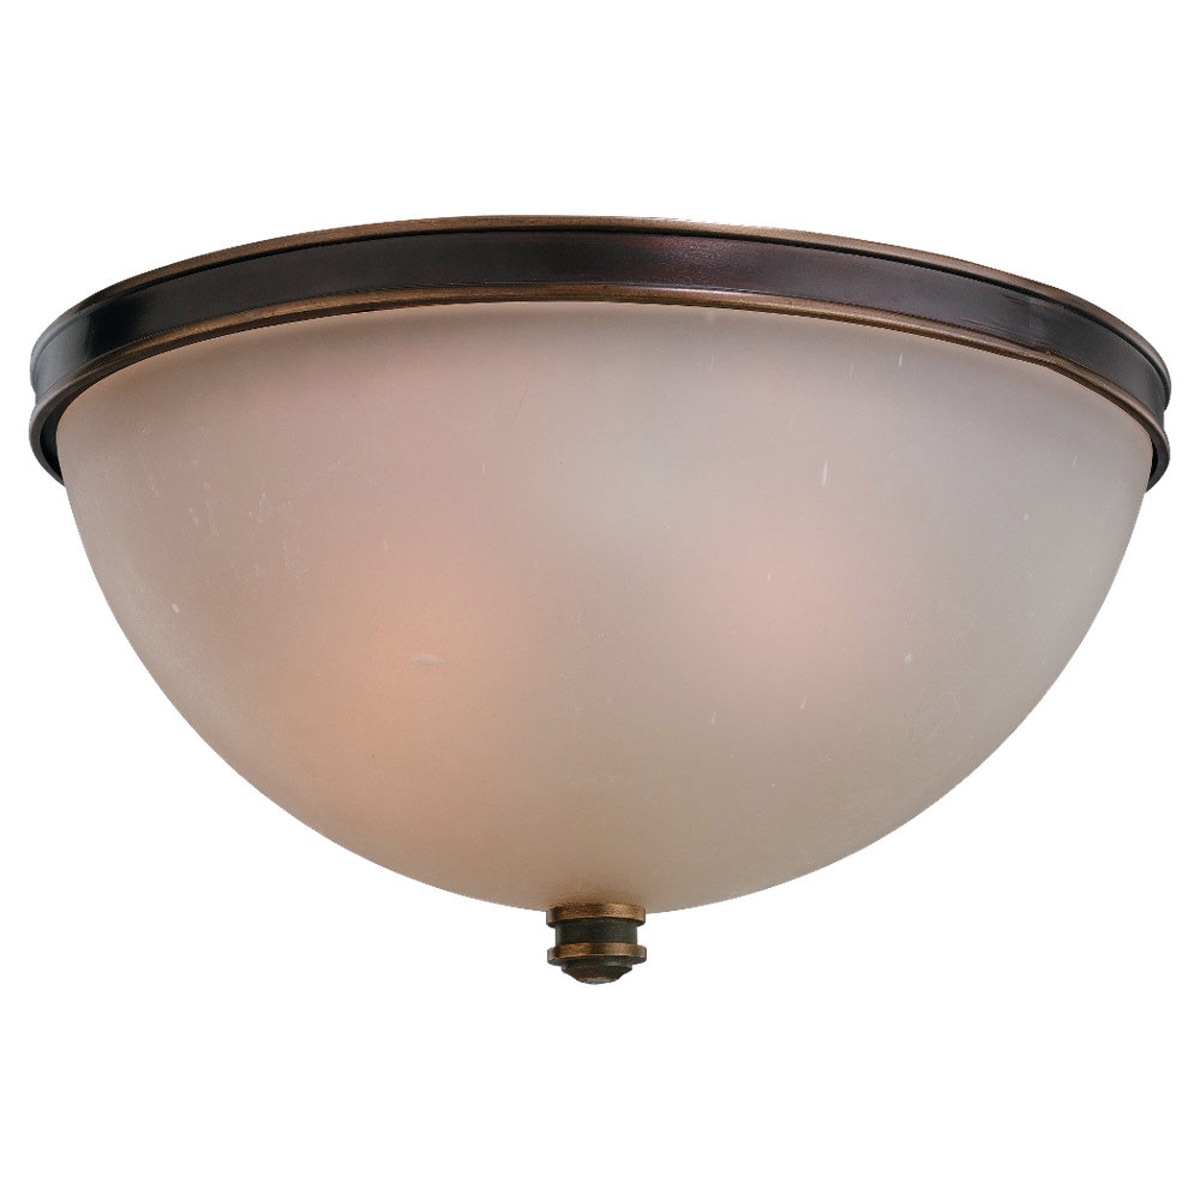 Sea Gull Lighting Warwick 3 Light Flush Mount in Vintage Bronze 75332-825